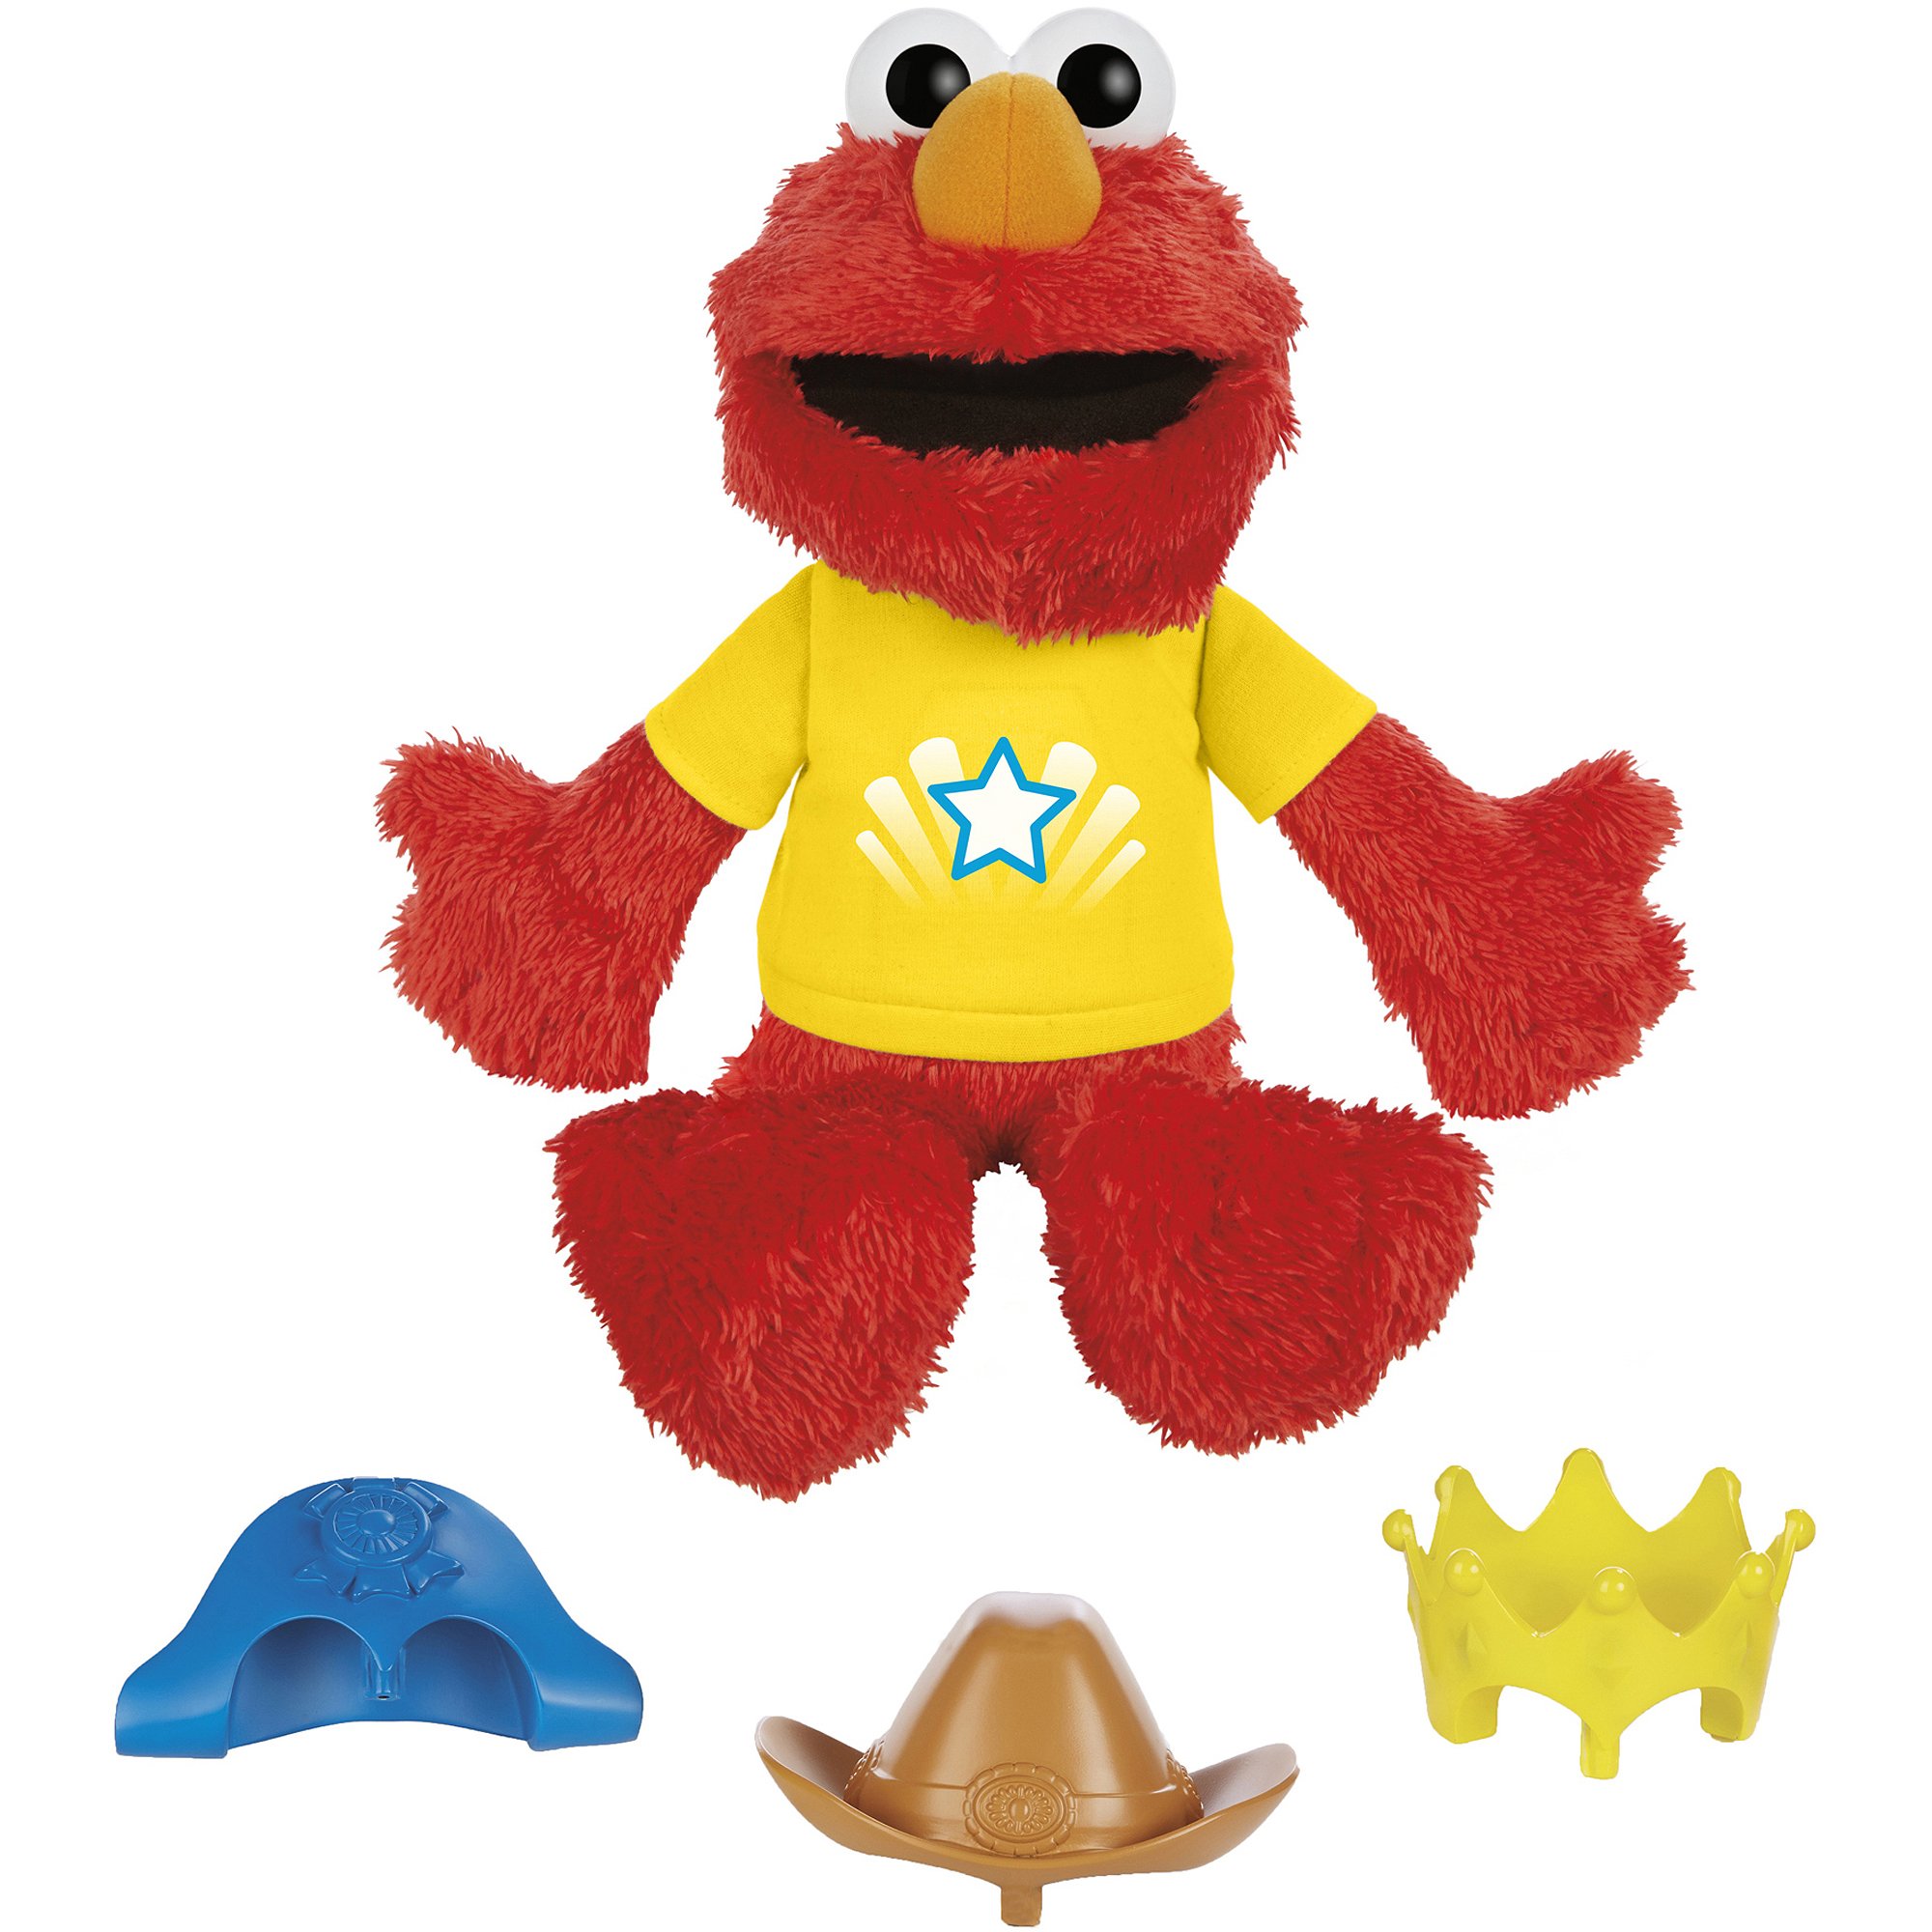 Playskool Sesame Street Let's IMagine Elmo Toy by Hasbro